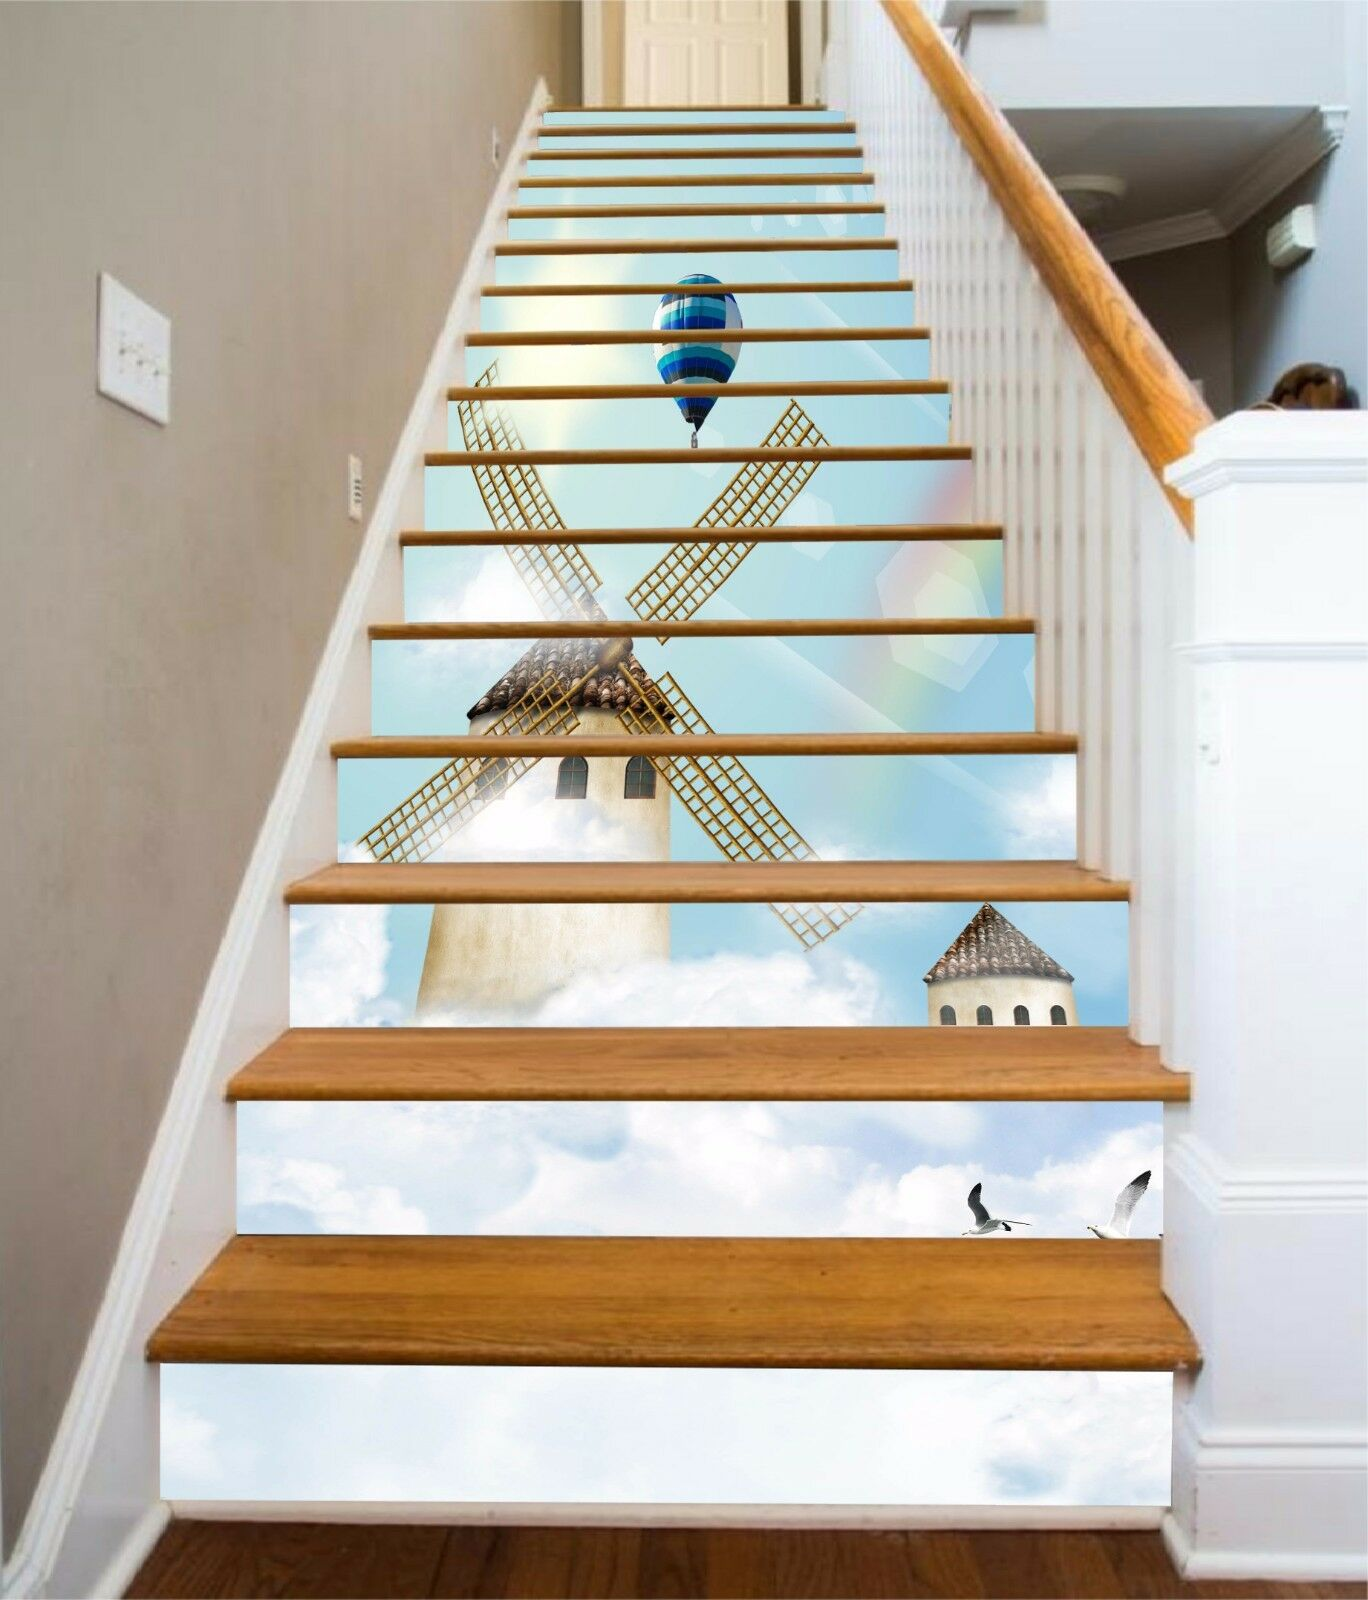 3D Sky windmill 45 Stair Risers Decoration Photo Mural Vinyl Decal Wallpaper UK